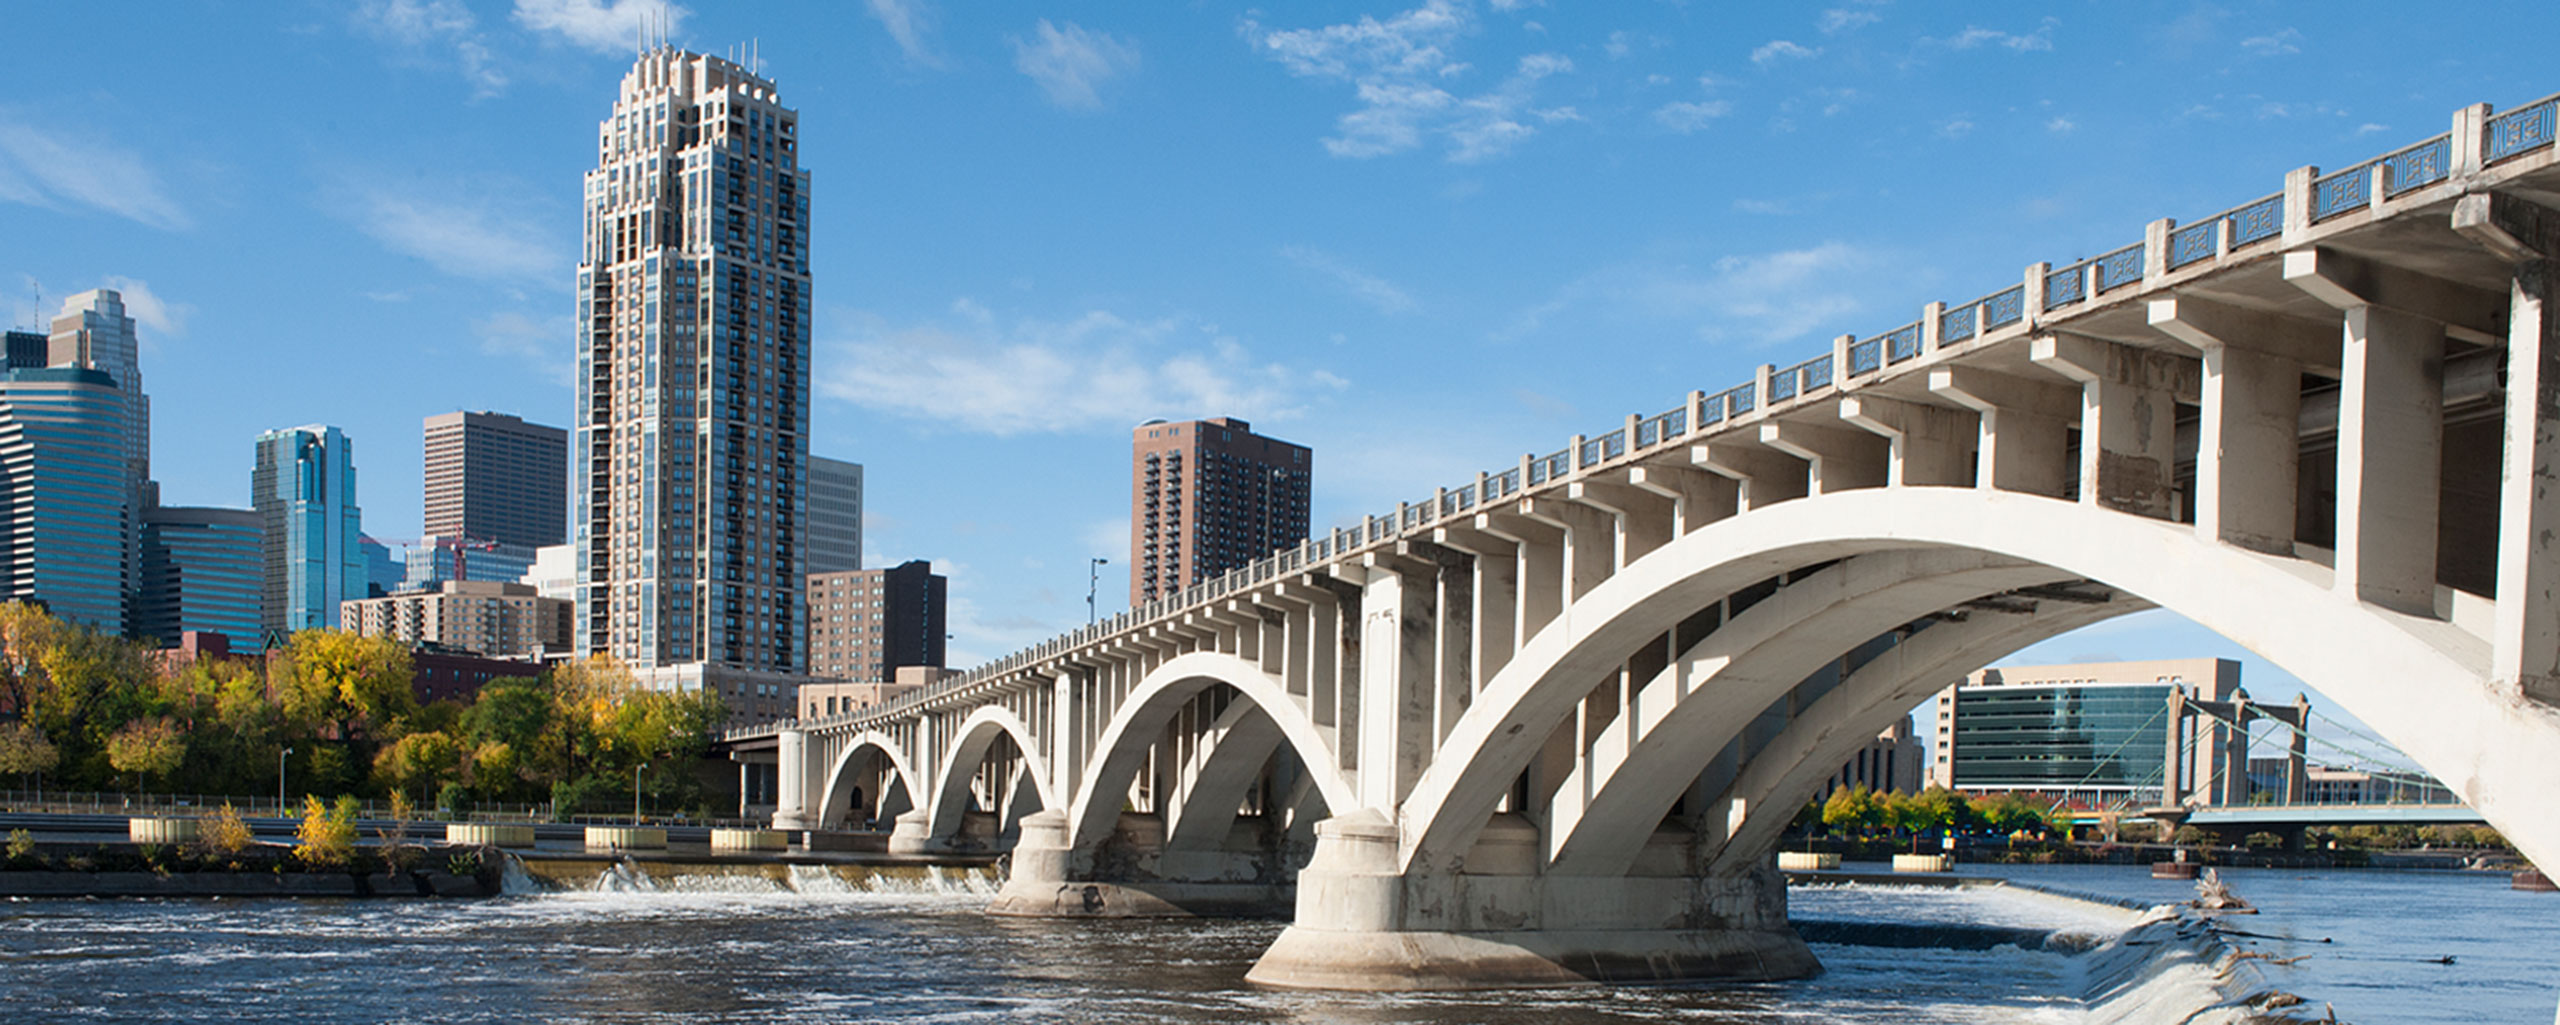 Minneapolis Skyline and 3rd Avenue Bridge. Photo by Krivit Photography, courtesy of Meet Minneapolis.